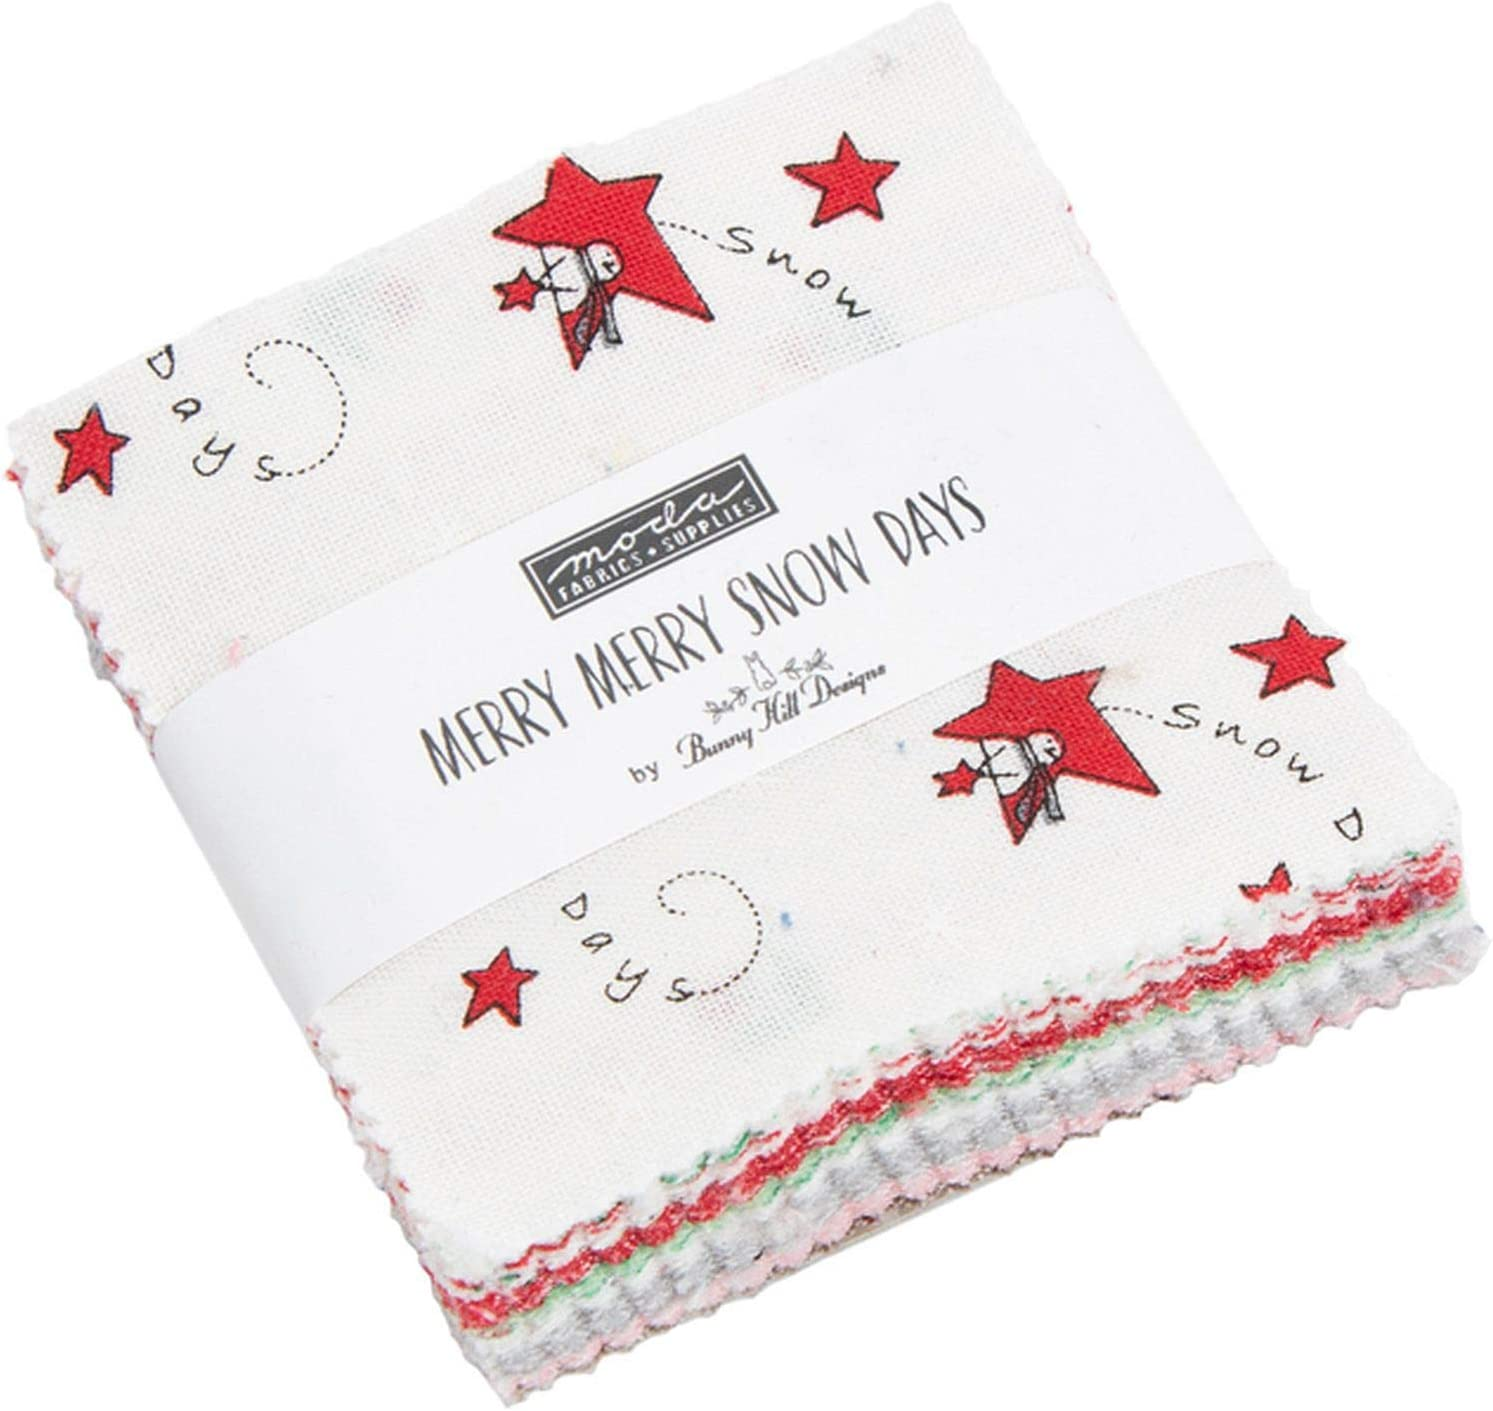 Merry Merry Snow Days Mini Charm Pack by Bunny Hill Designs; 42-2.5 Inch Precut Fabric Quilt Squares